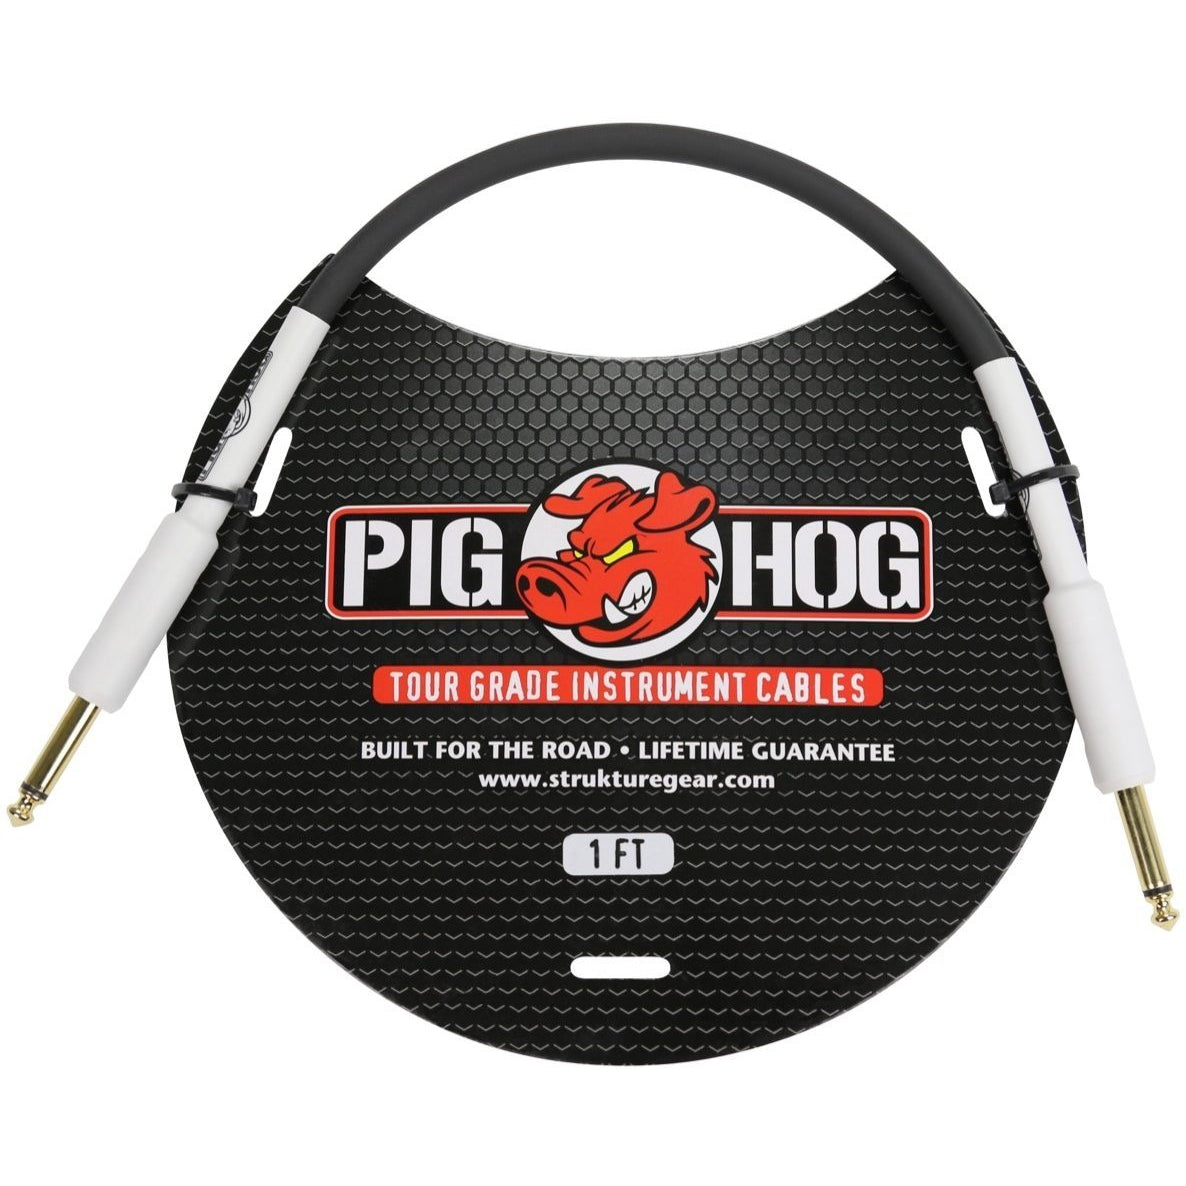 Pig Hog Instrument Cable, 1'